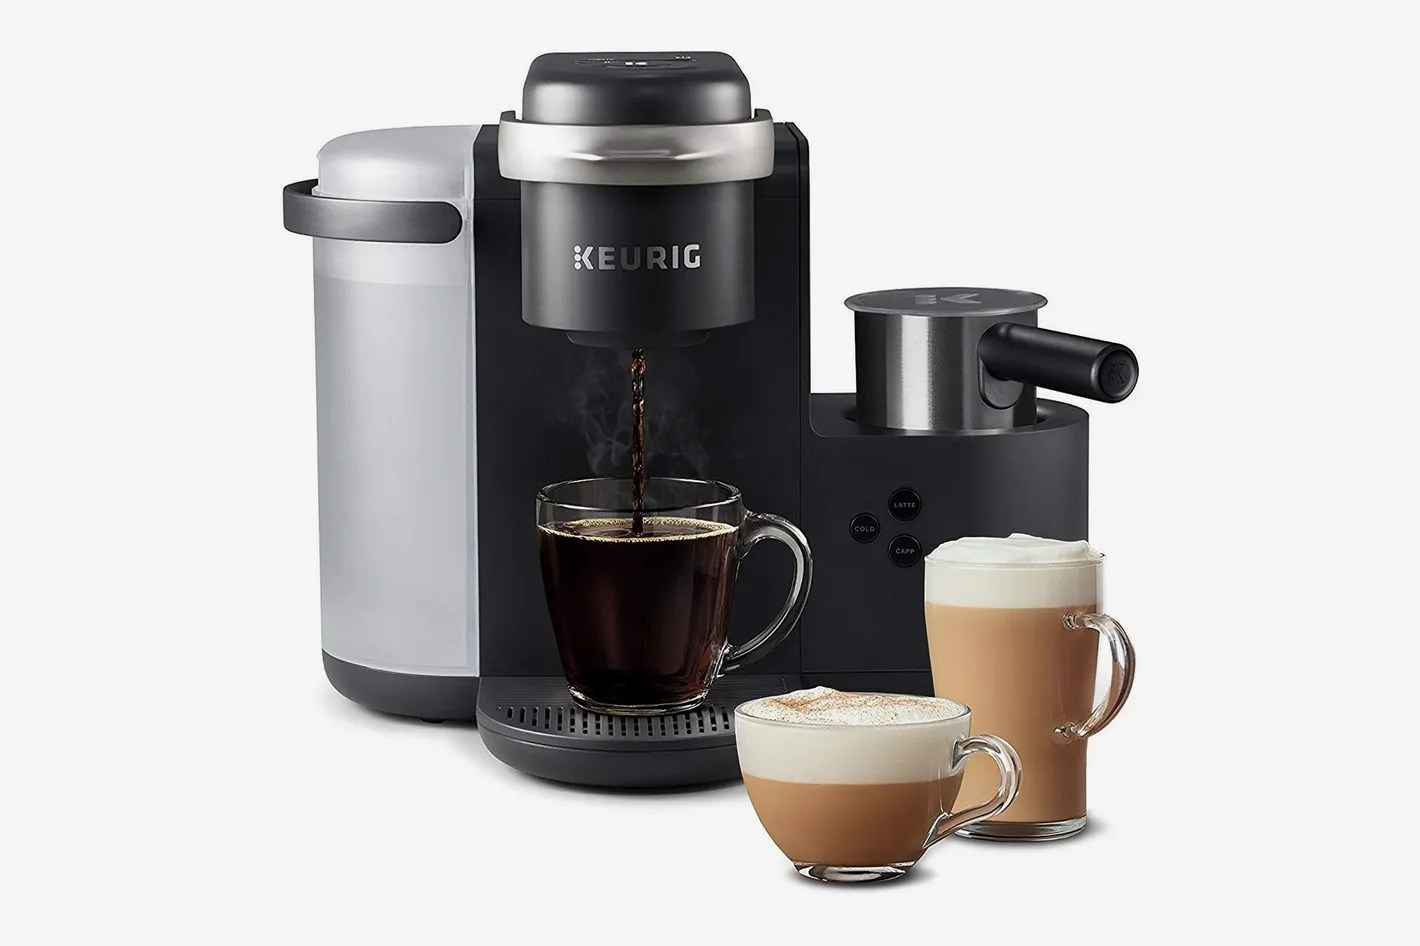 Machine A Cafe Keurig K Cafe Coffee Maker Latte Maker And Cappuccino Maker